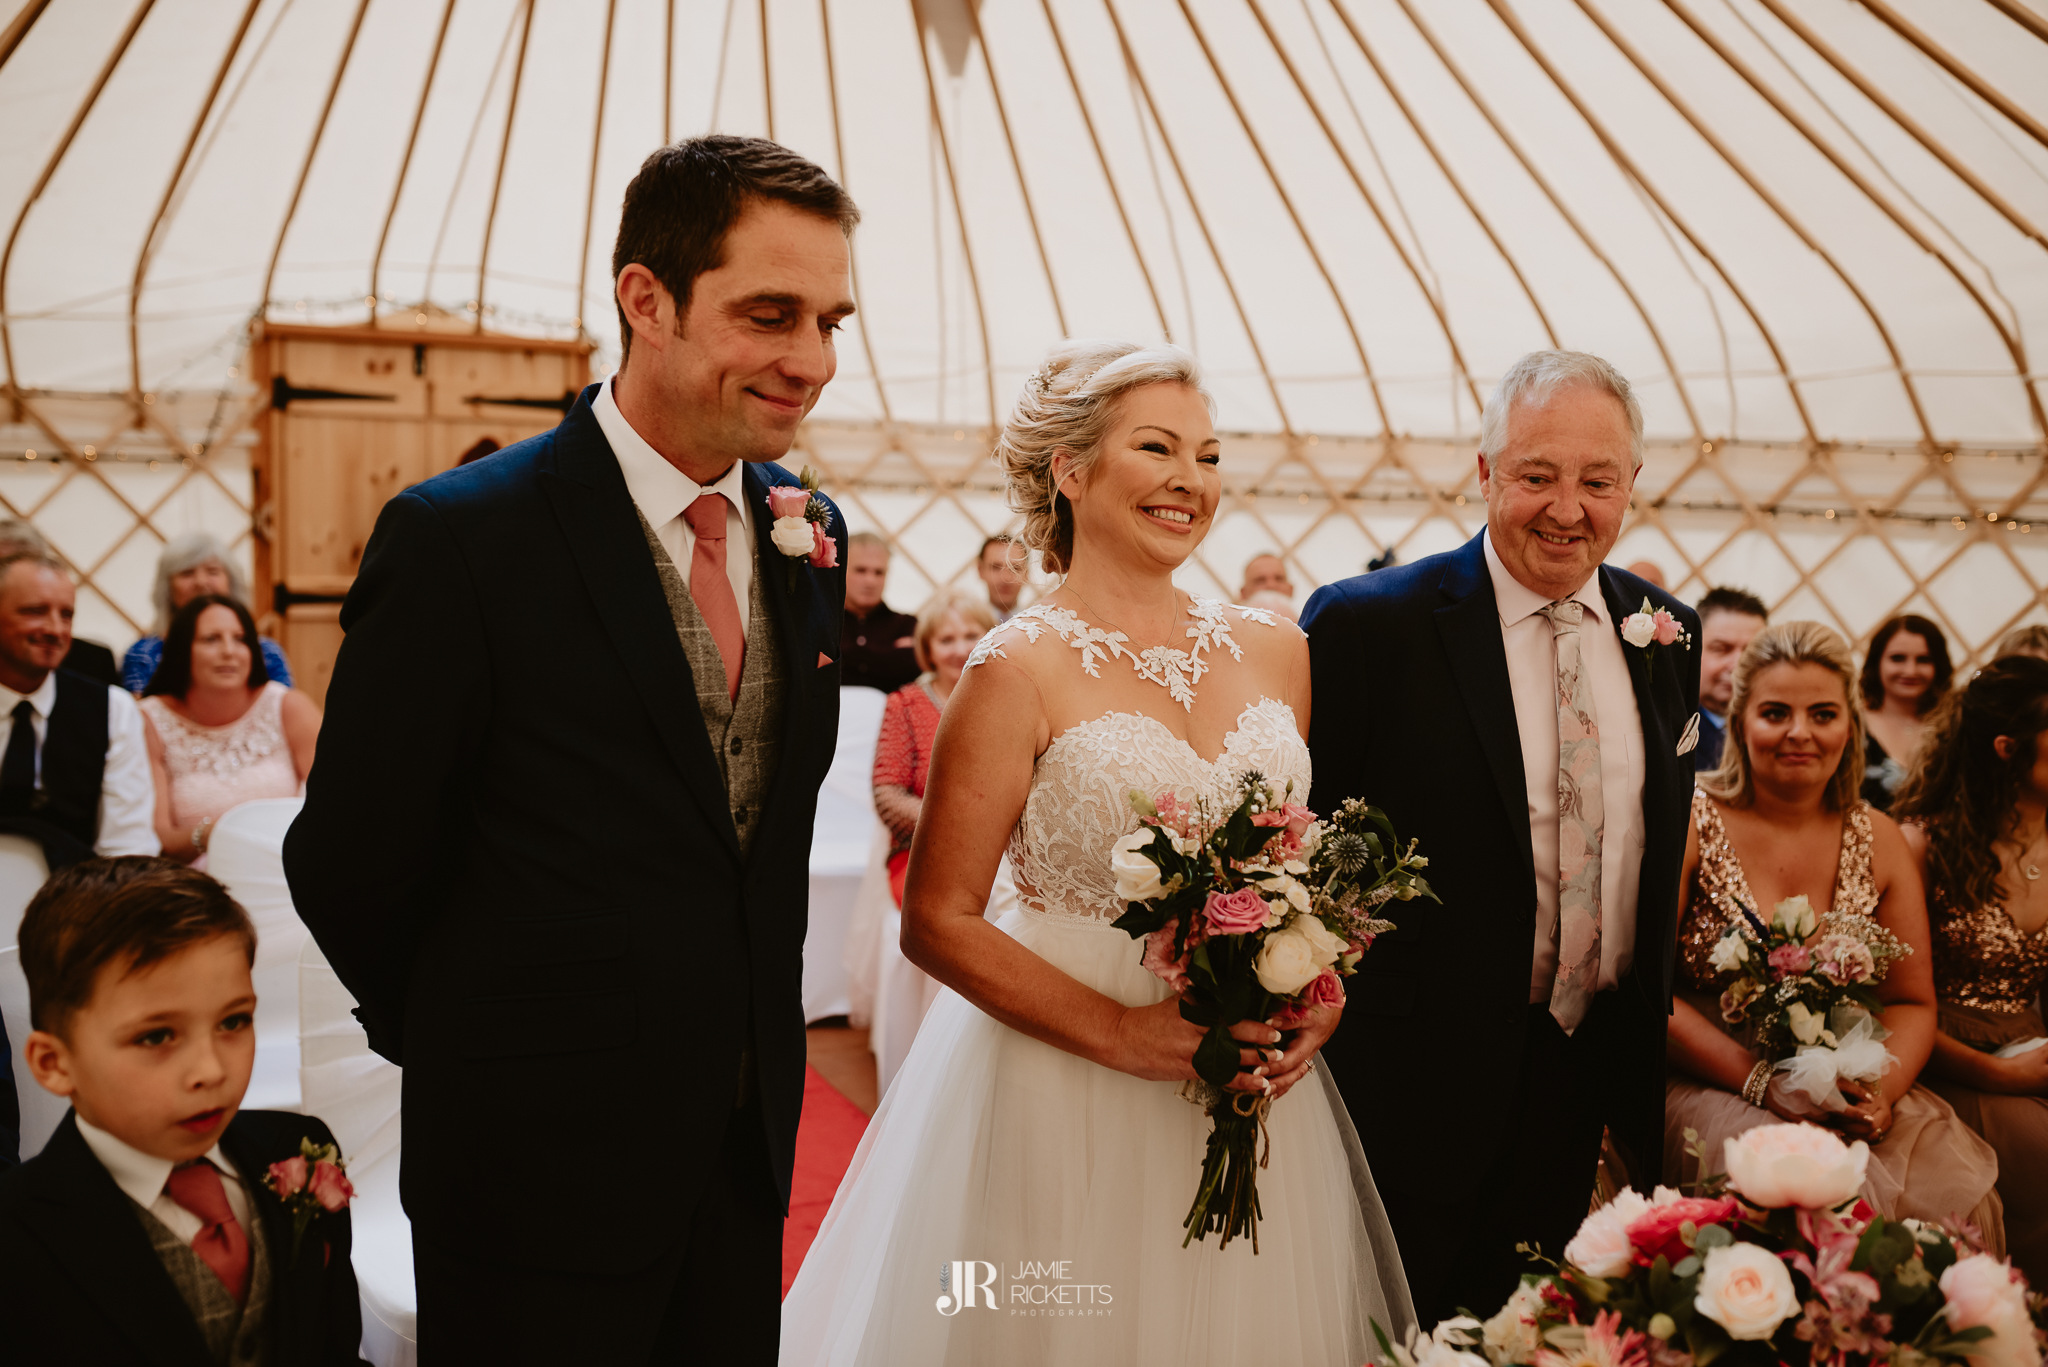 Wroxeter-Hotel-Wedding-Photography-In-Shropshire-By-Shropshire-Wedding-Photographer-Jamie-Ricketts-057.JPG